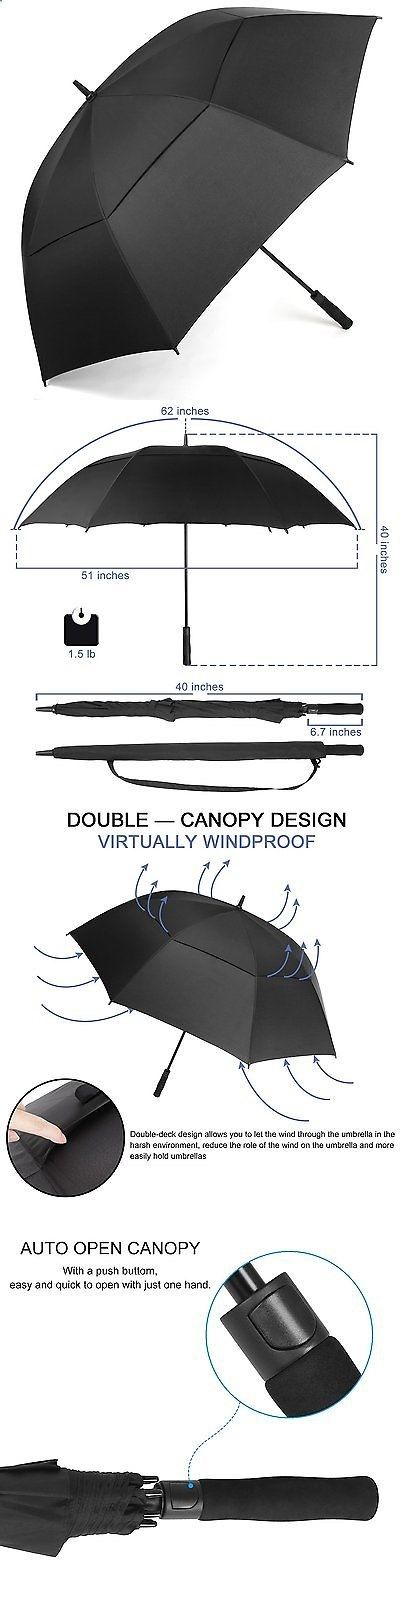 Golf Umbrellas 18933: Rainlax Windproof Golf Umbrella 62 Inch Extra Large Double Canopy Automatic Open -> BUY IT NOW ONLY: $30.65 on eBay!